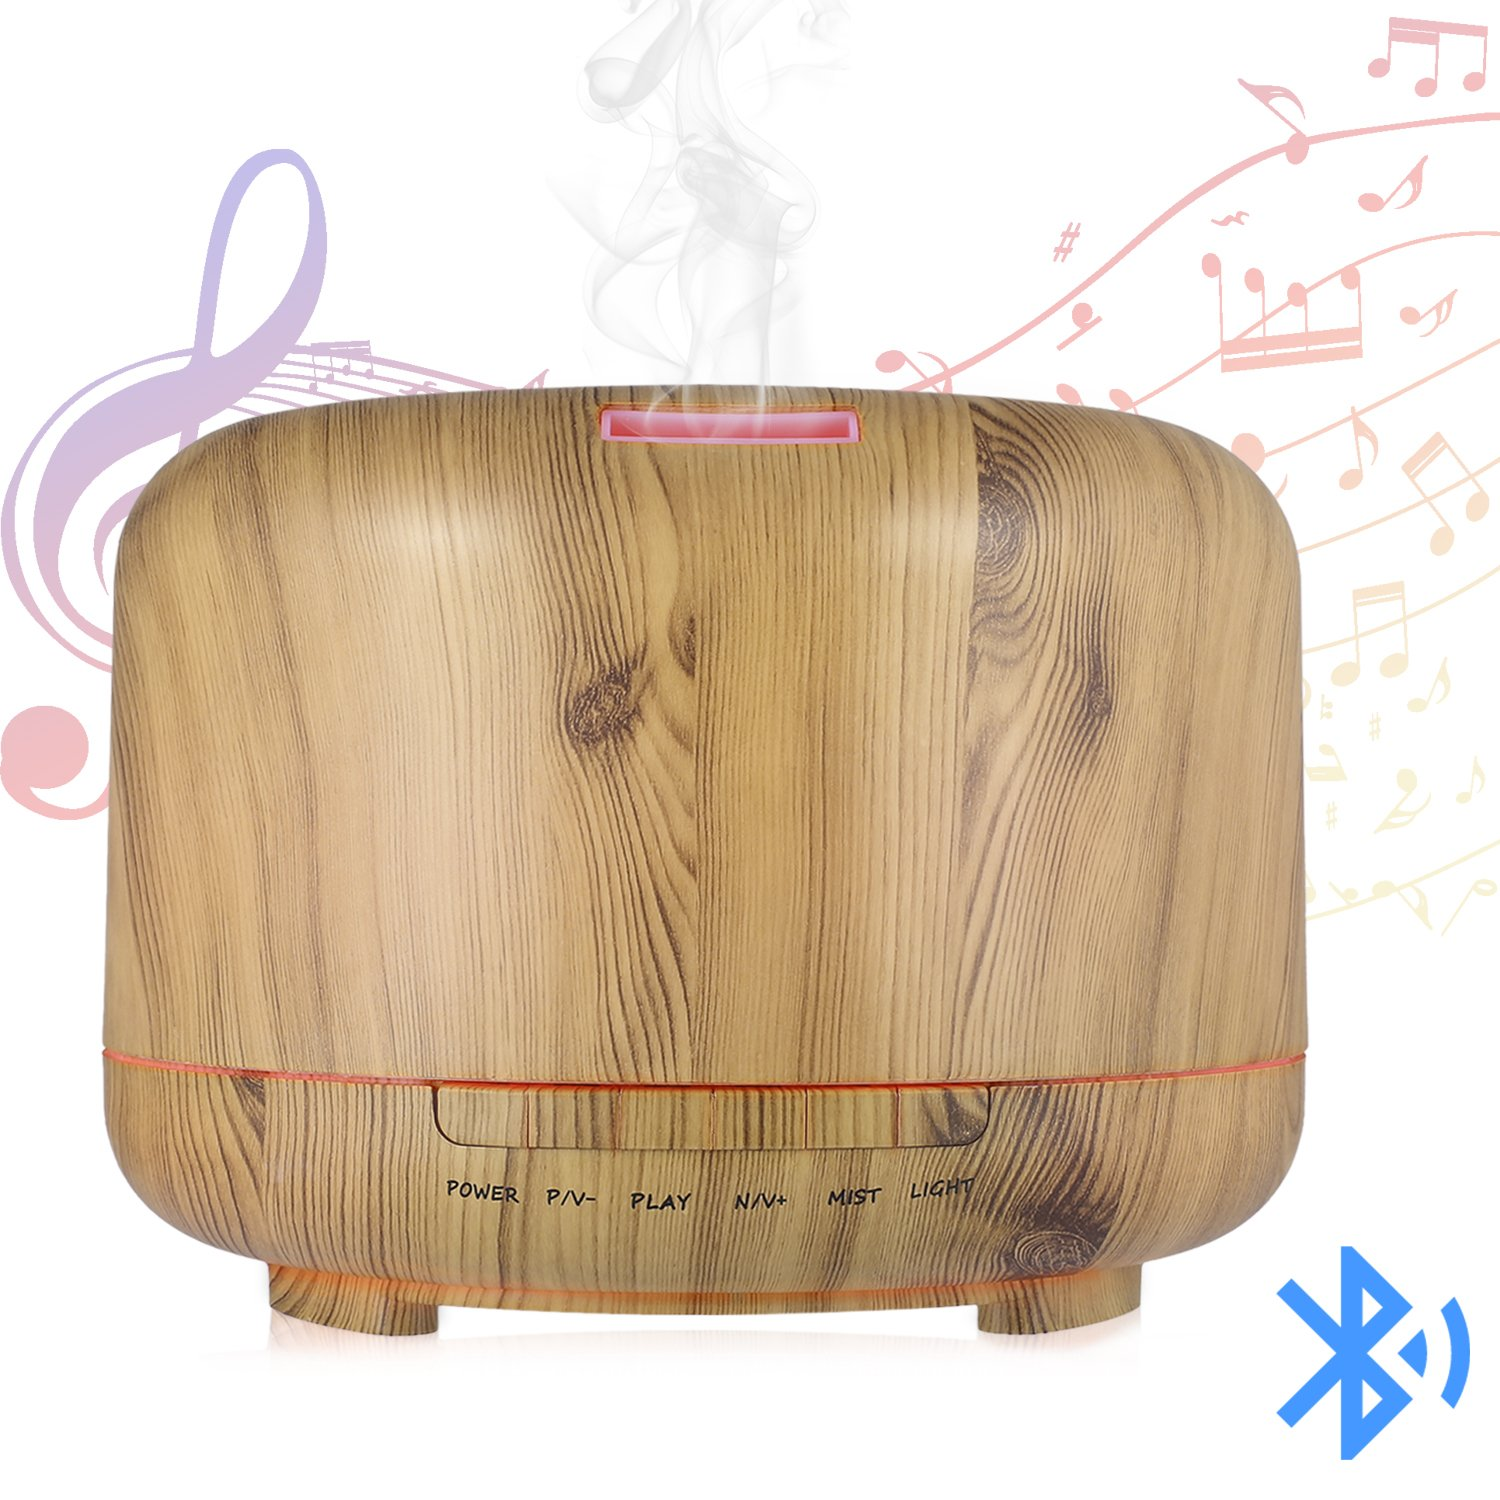 Hrome Essential Oil Diffuser Humidifier with Bluetooth Speaker and 7 Color LED Night Light, 600ml Aroma Diffuser for Baby Rooms, Bedrooms, Spa and Office, Auto Shut-Off, Wood Grain (wood texture)